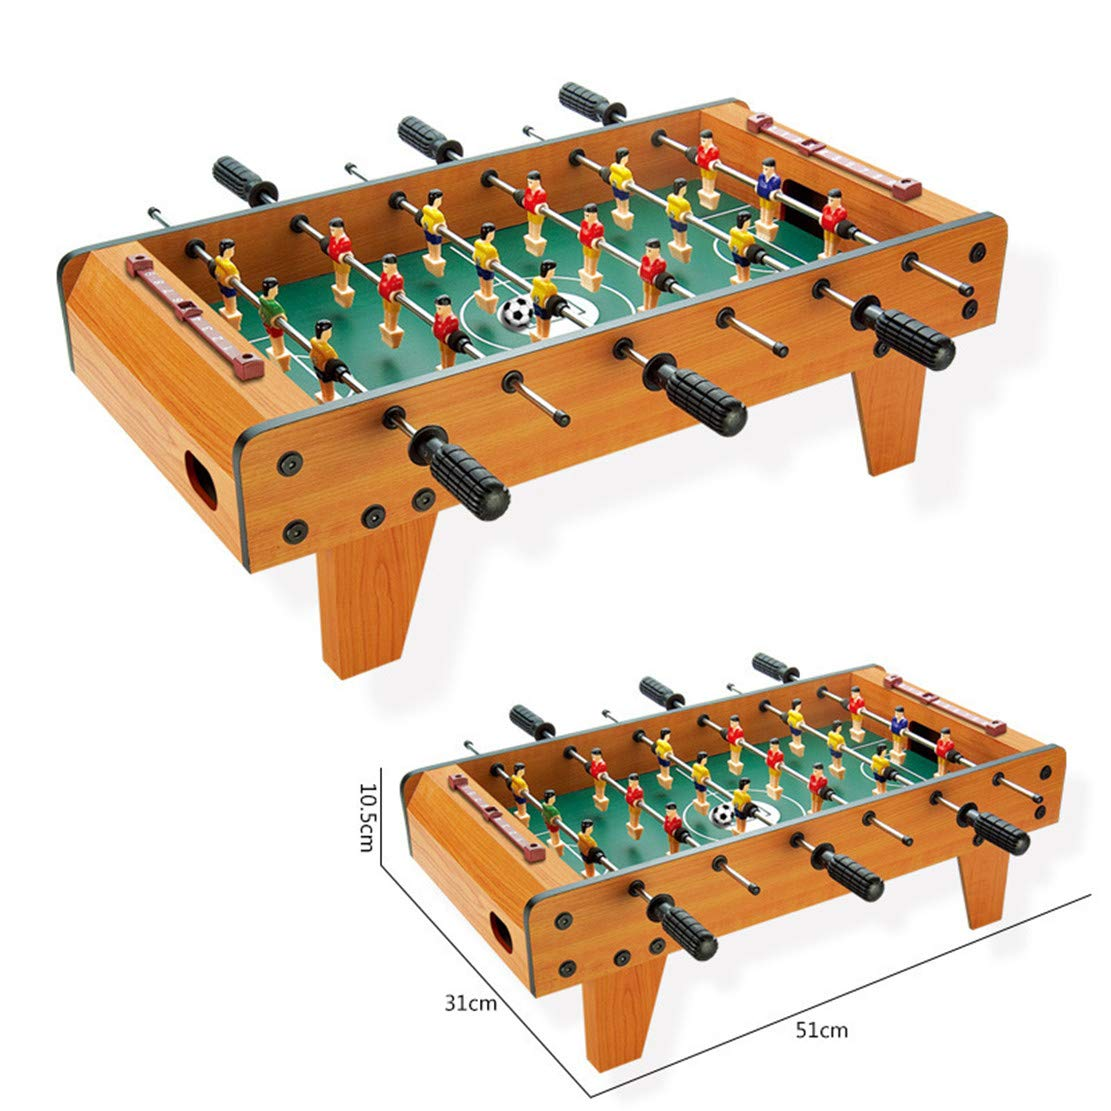 MSTQ Large Football Table Wooden Indoor Soccer Table 6 Football Table Double Battle Desktop Board Game Children Sports Toys 9 Models (66006, L) by MSTQ